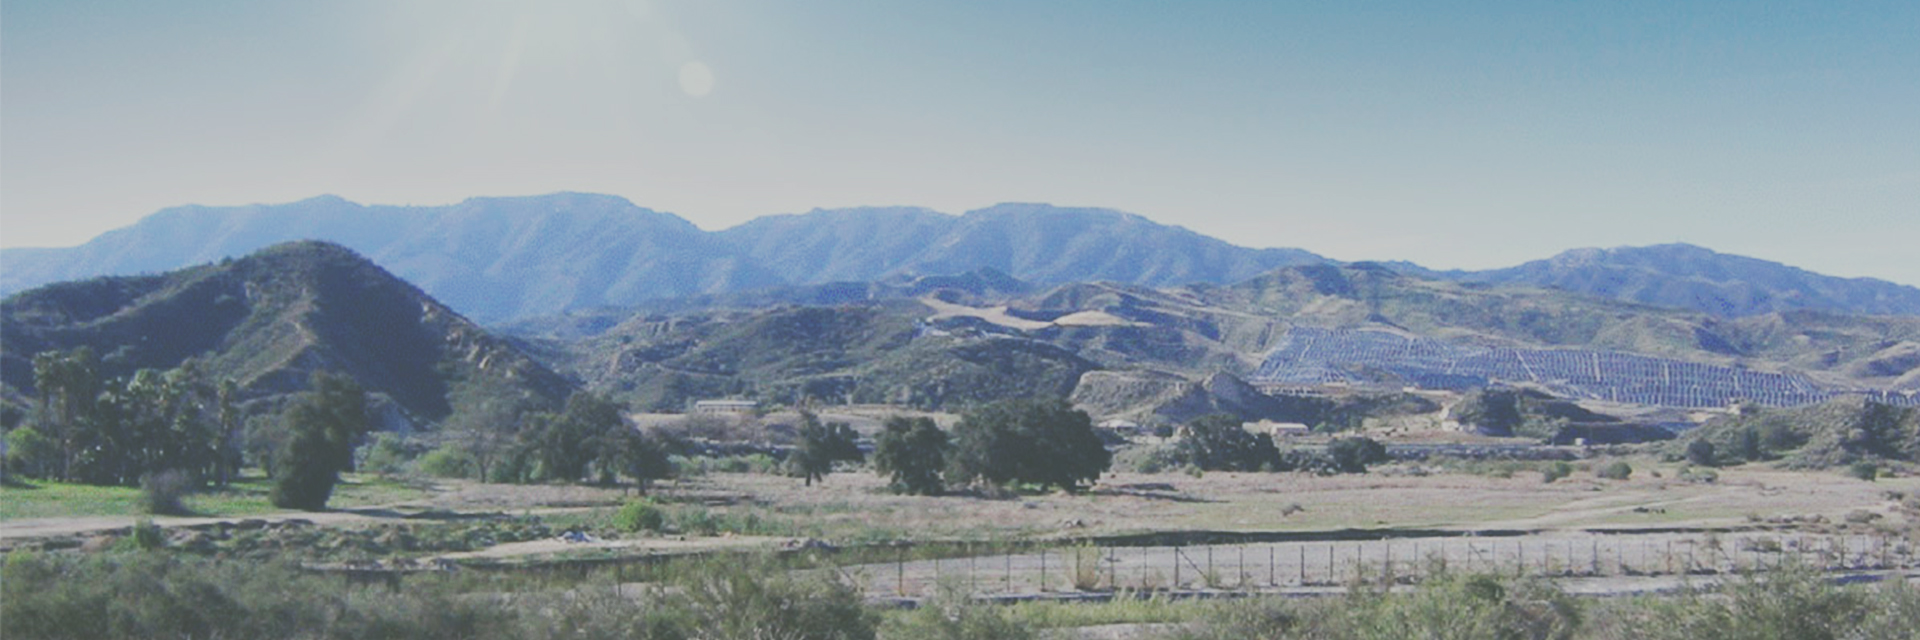 Landscape of Vista Canyon's Site